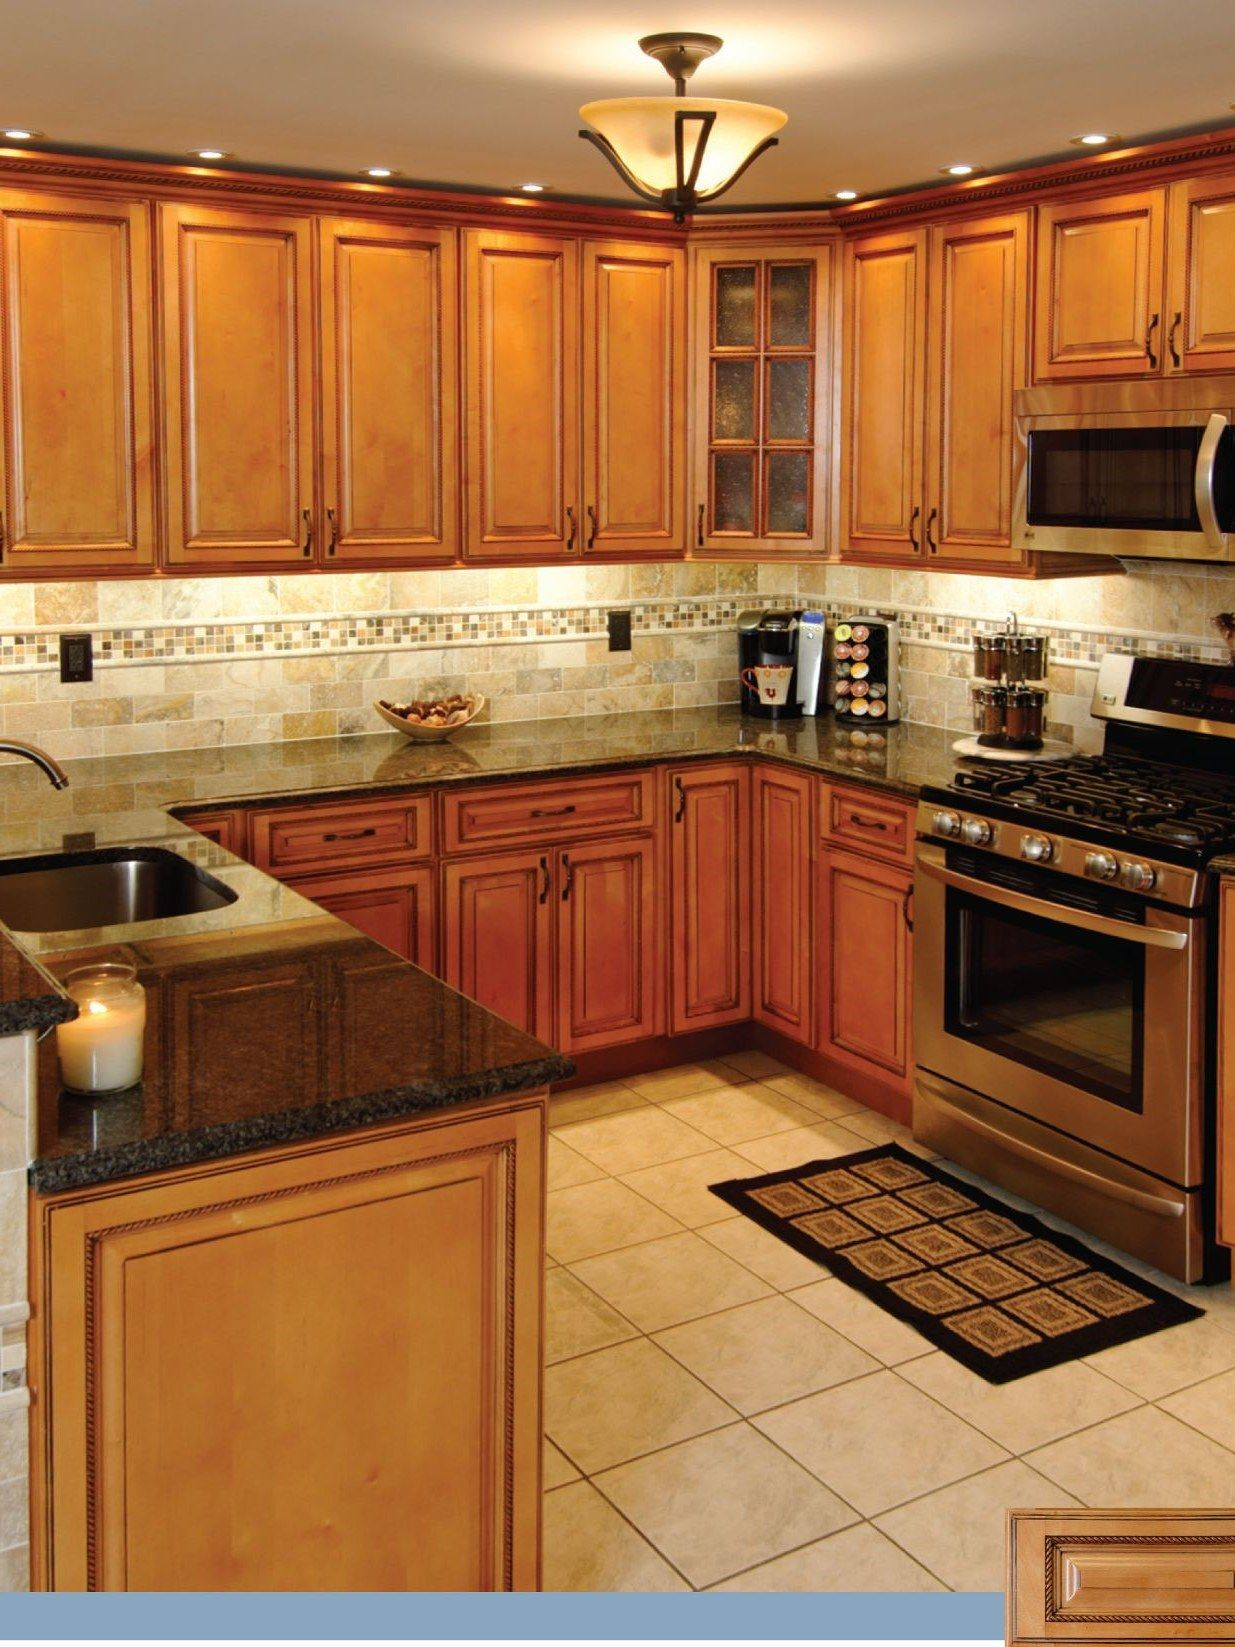 Is honey oak coming back? Wooden kitchen cabinet makeover. #honeyoakcabinets